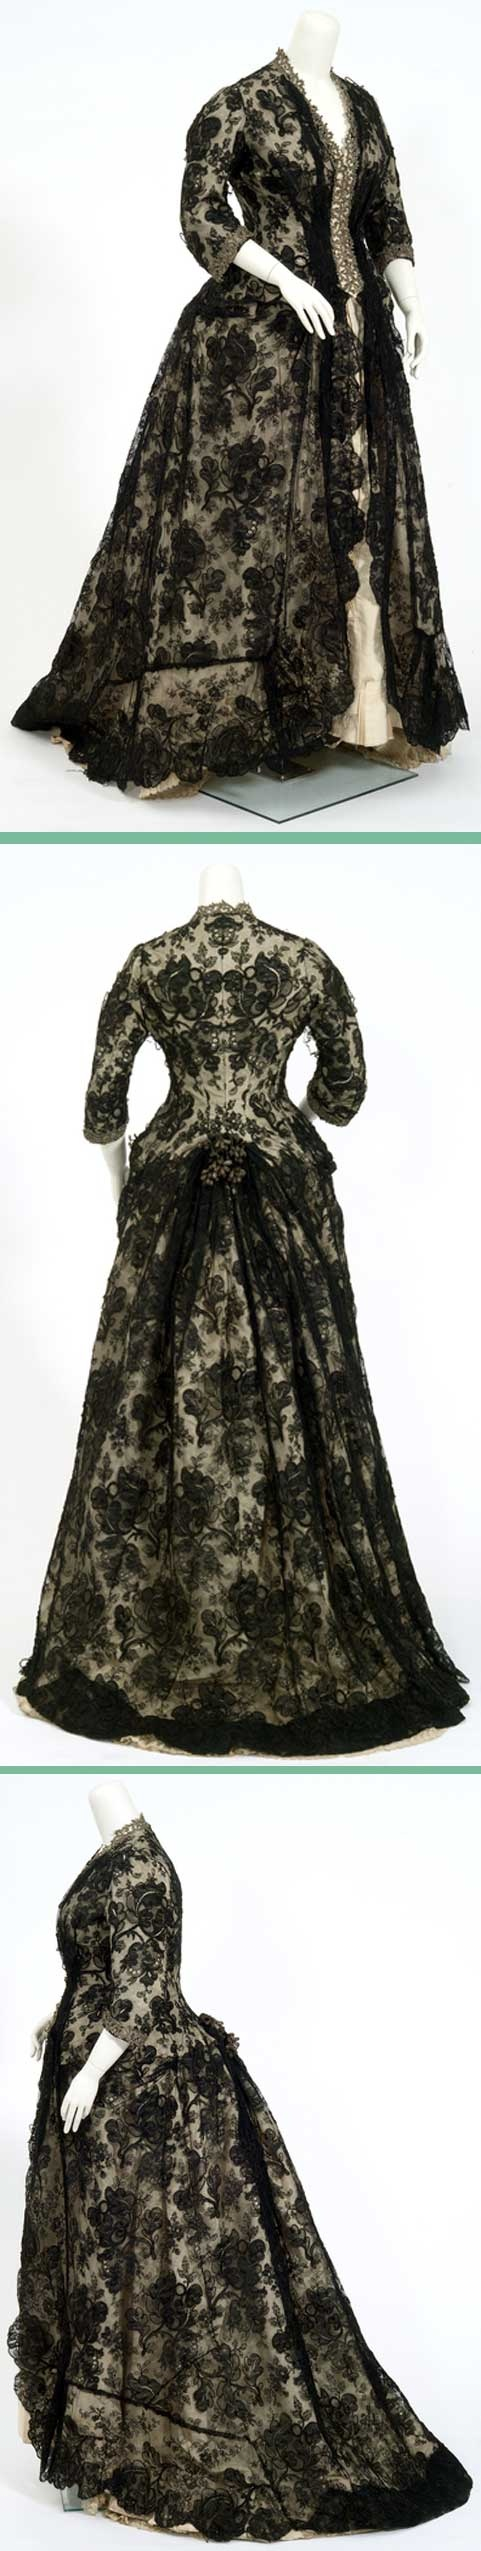 One-piece dress, ca. 1870-1876, of ivory moiré with bodice and overskirt of Chantilly-like black lace. Minnesota Historical Society